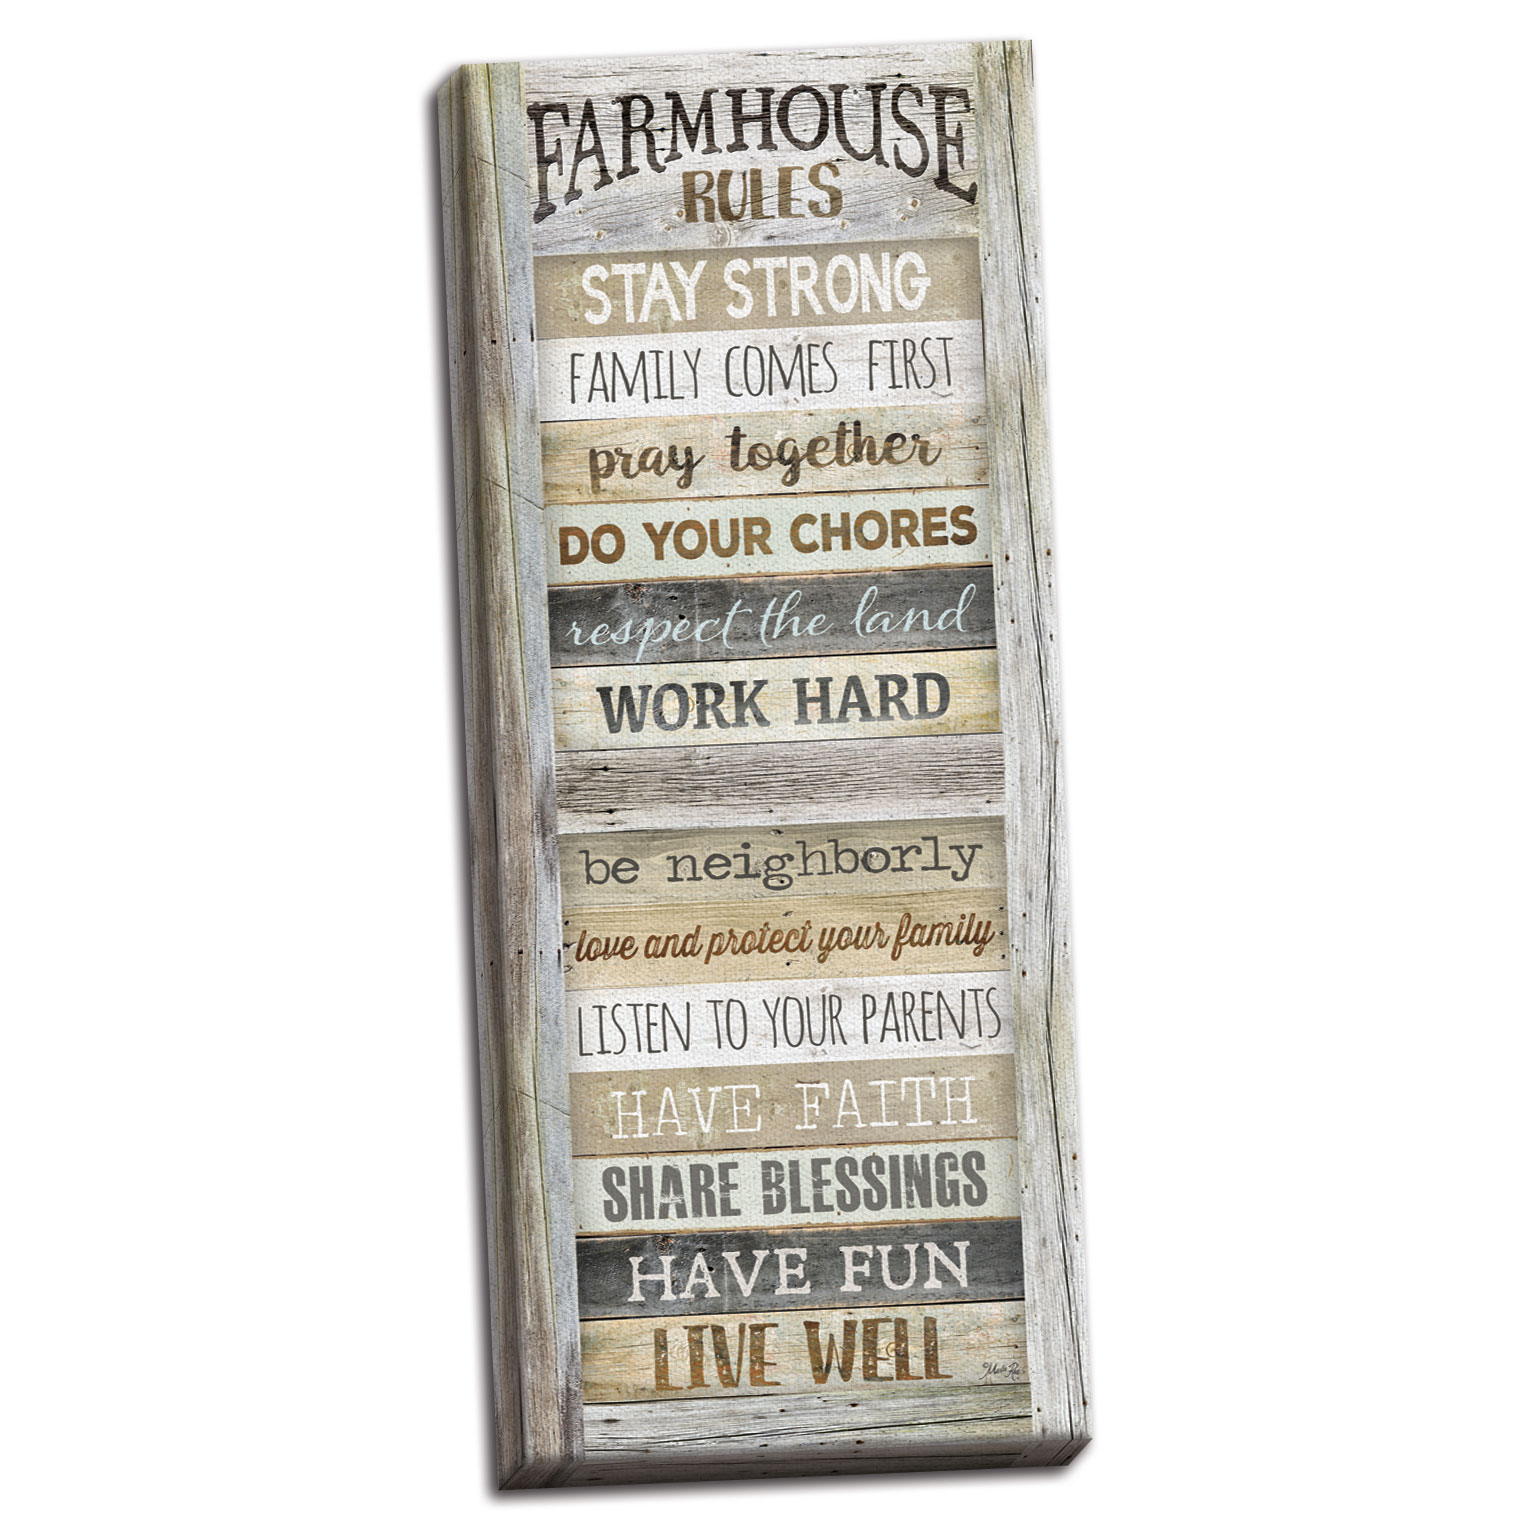 Gango Home Decor Country-Rustic Farmhouse Rules by Marla Rae (Ready to Hang); One 8x20in Hand-Stretched Canvas